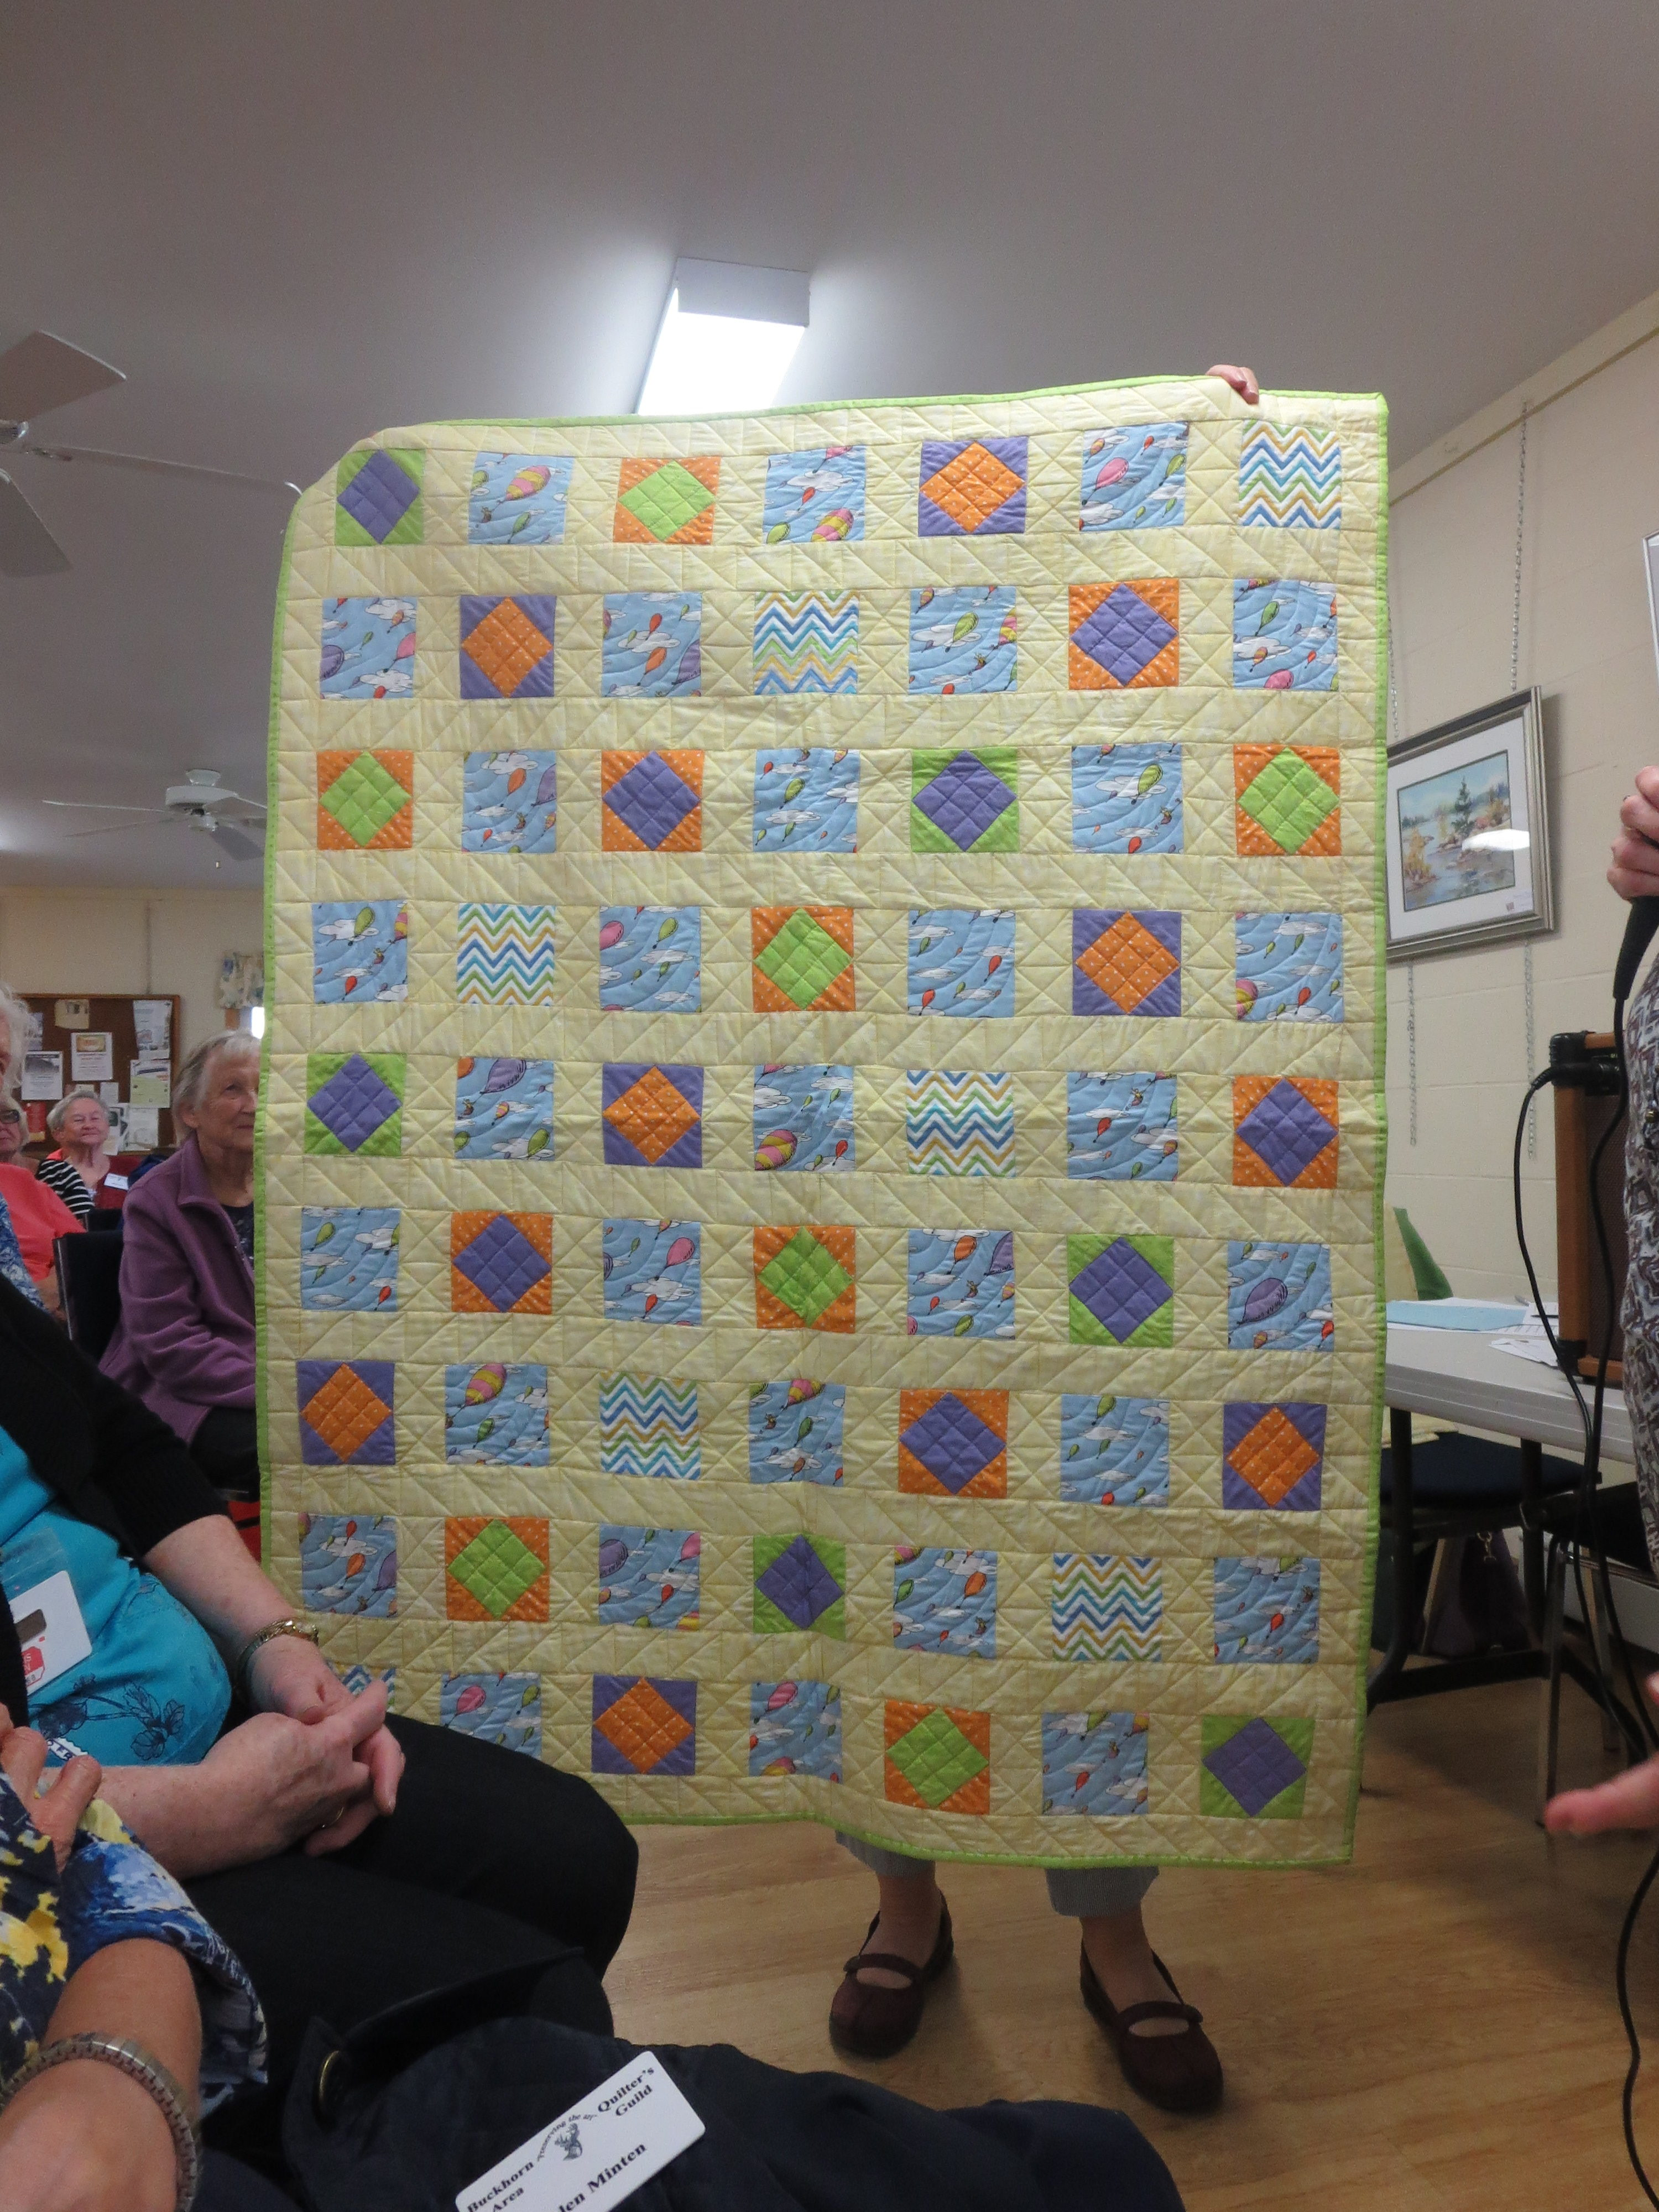 Eileen Baker's Square in a Square Quilt